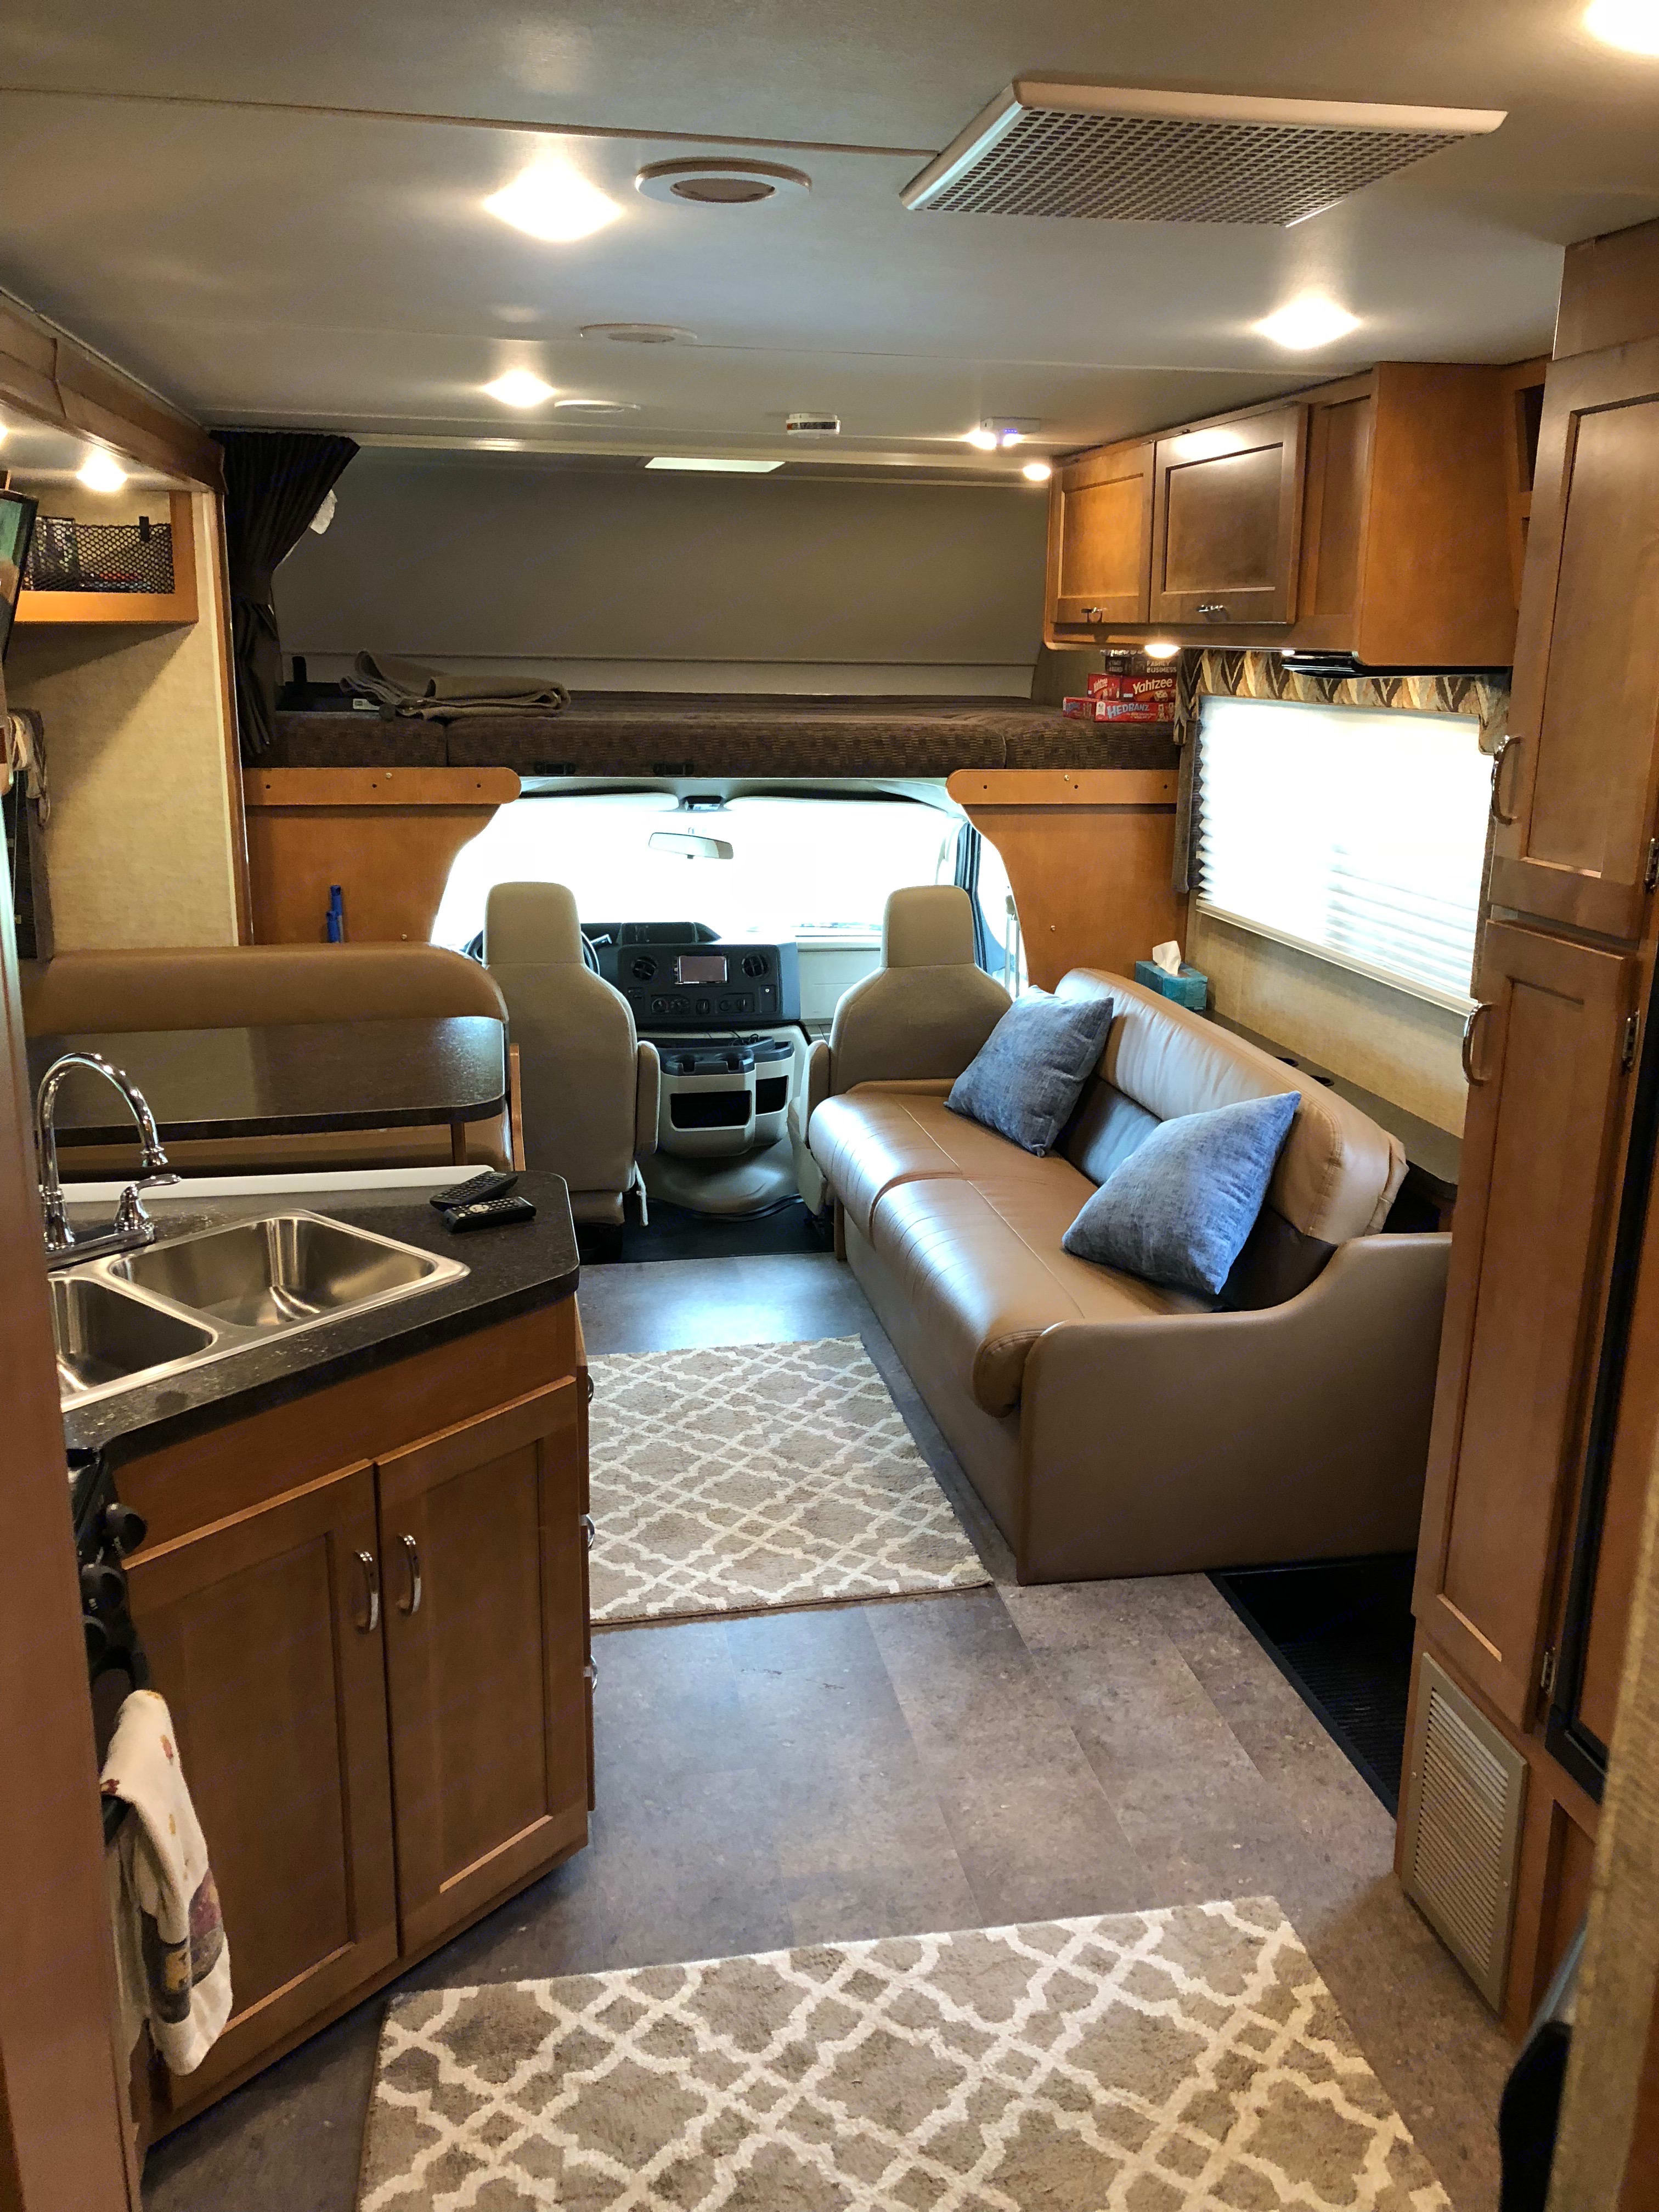 This class C RV offers seating that is functional for a group. The indoor seating is together rather than separate from each other. . Winnebago Minnie-Winnie 2018